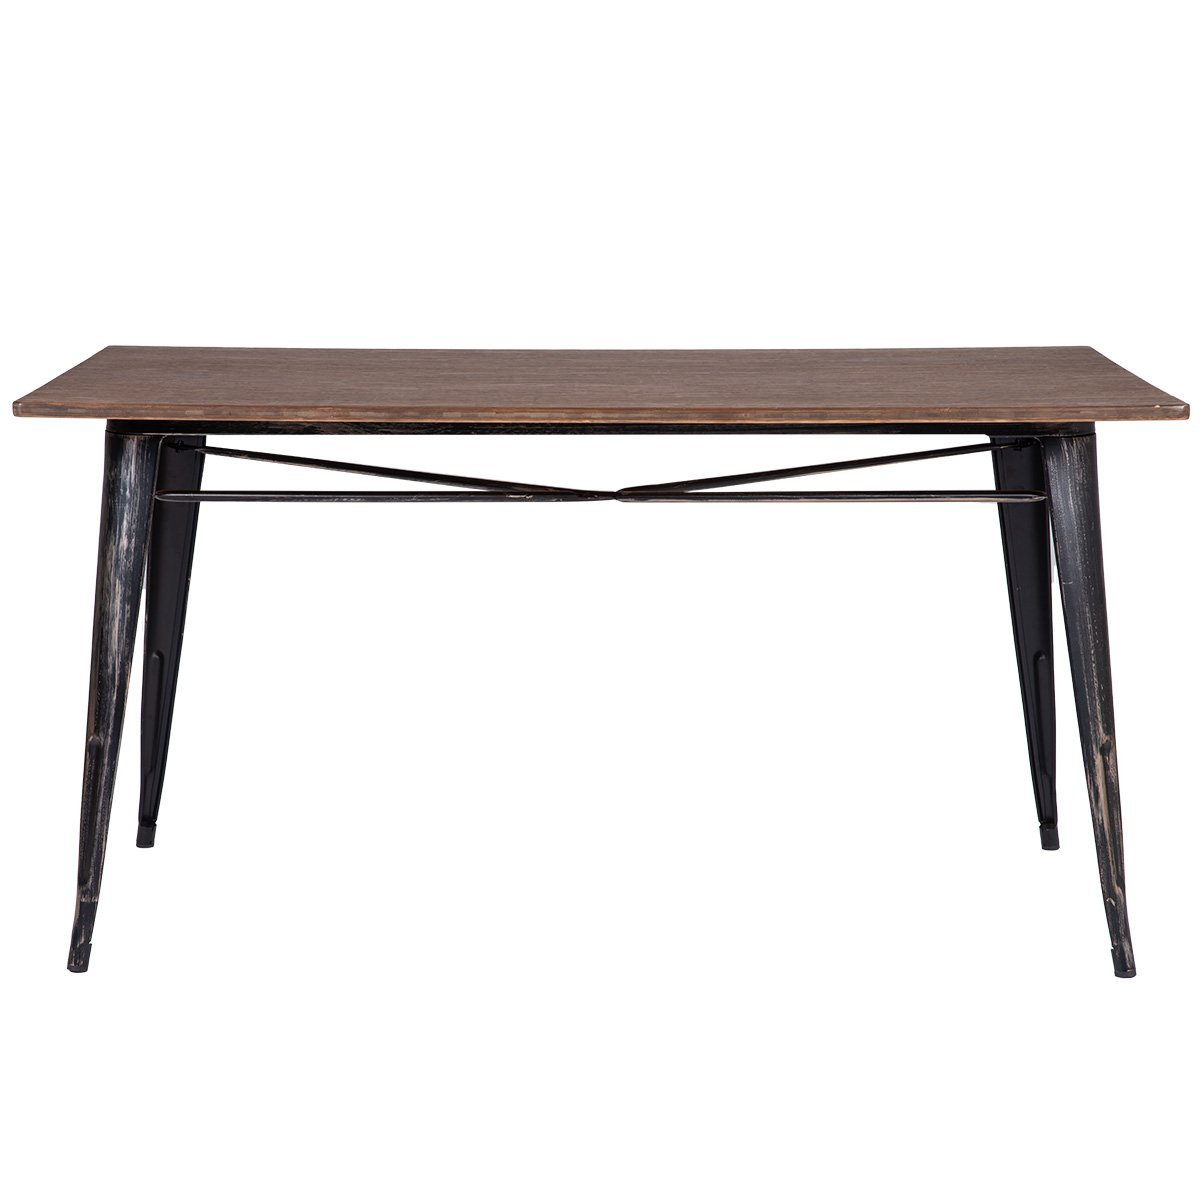 Ralph Dining Table & Bench.